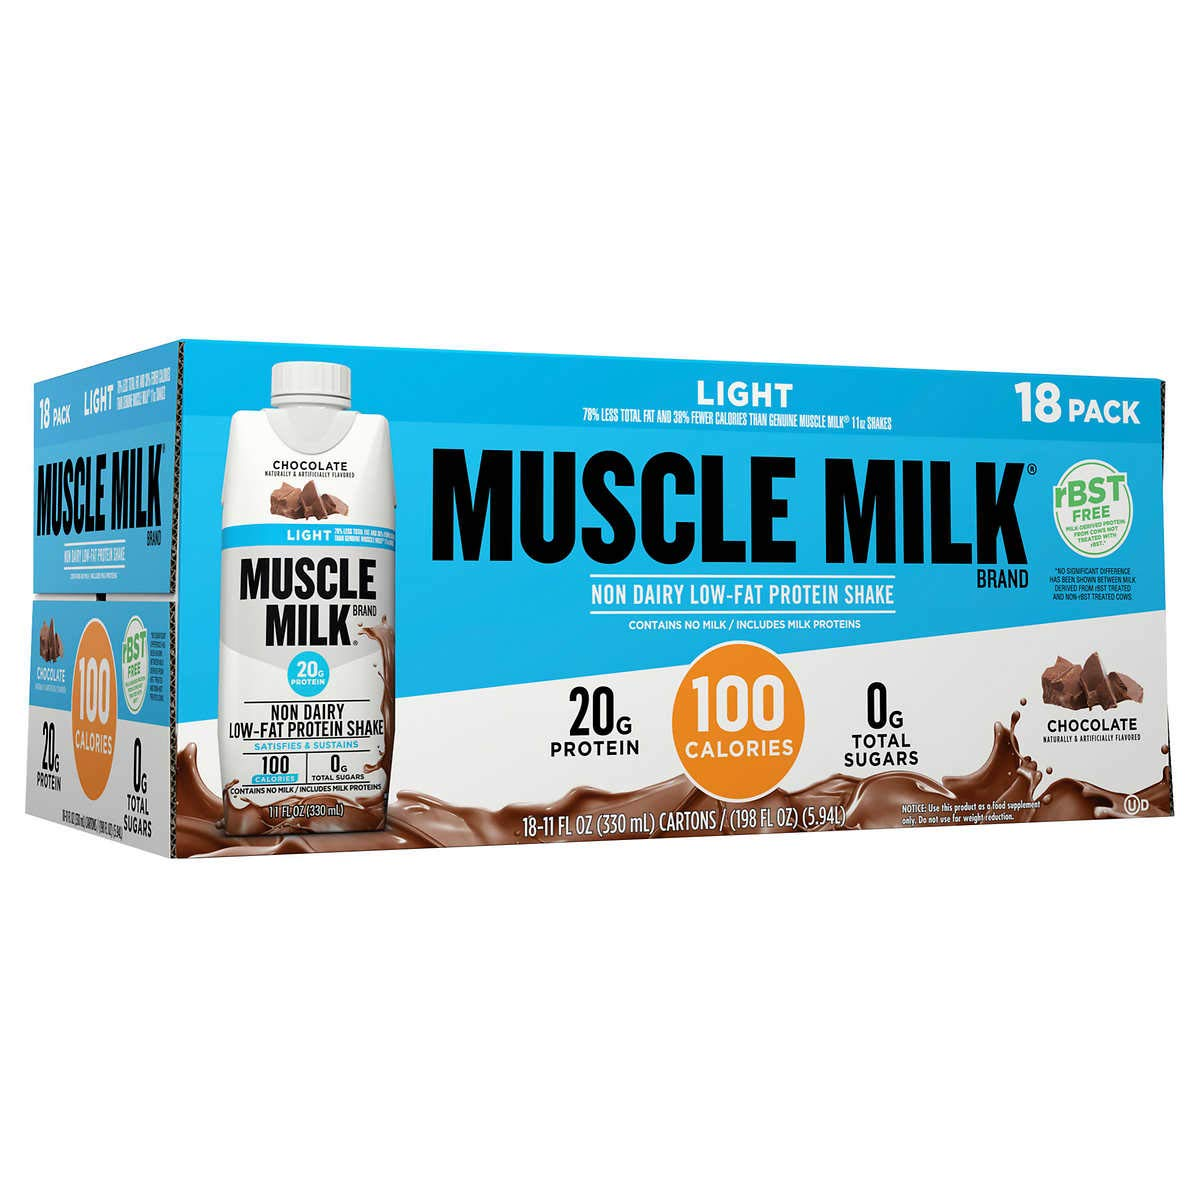 Muscle Milk Light RBST Except More Free Chocolate Protein Shakes 18-Pack, 11 fl oz